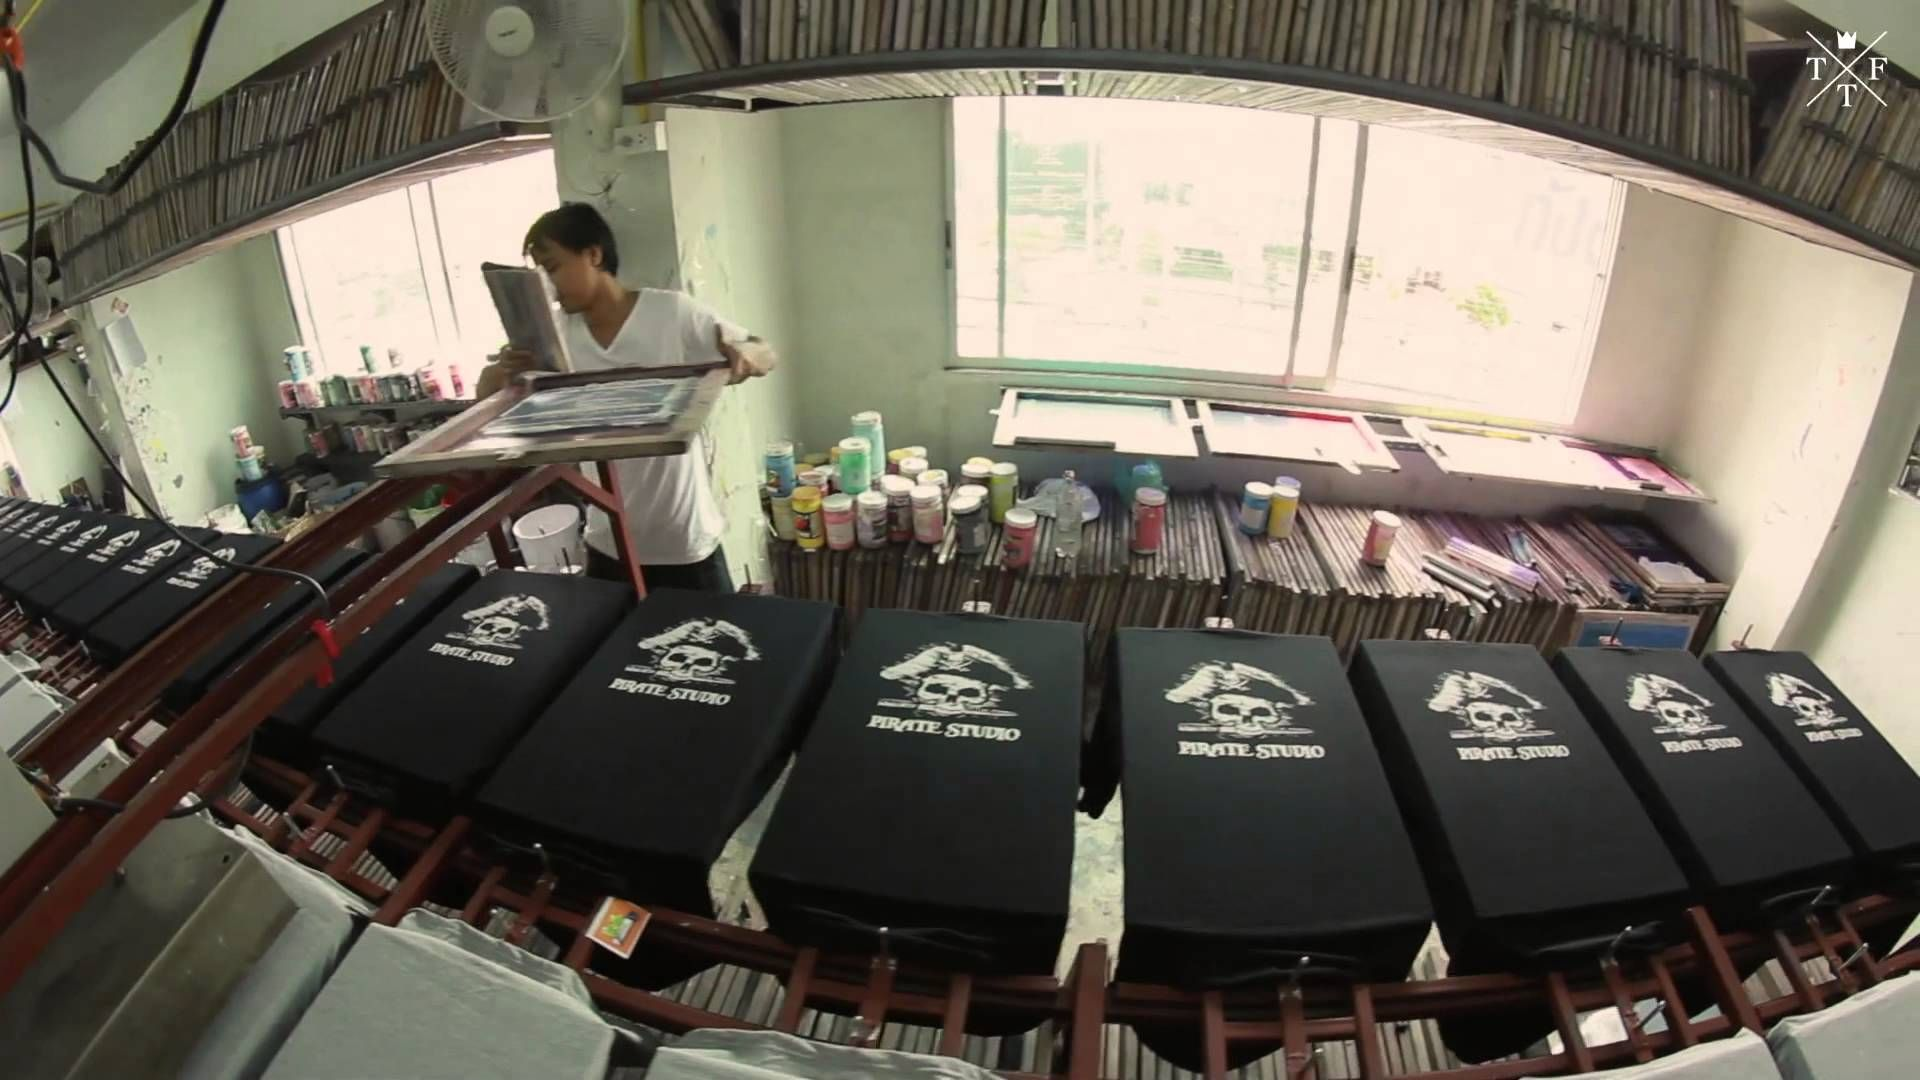 T-shirt Factory Thailand, Screen Printing Thailand, Thai T-shirt Factory, T- shirt Thailand | T shirt factory, Screen printing, Screen printed tshirts